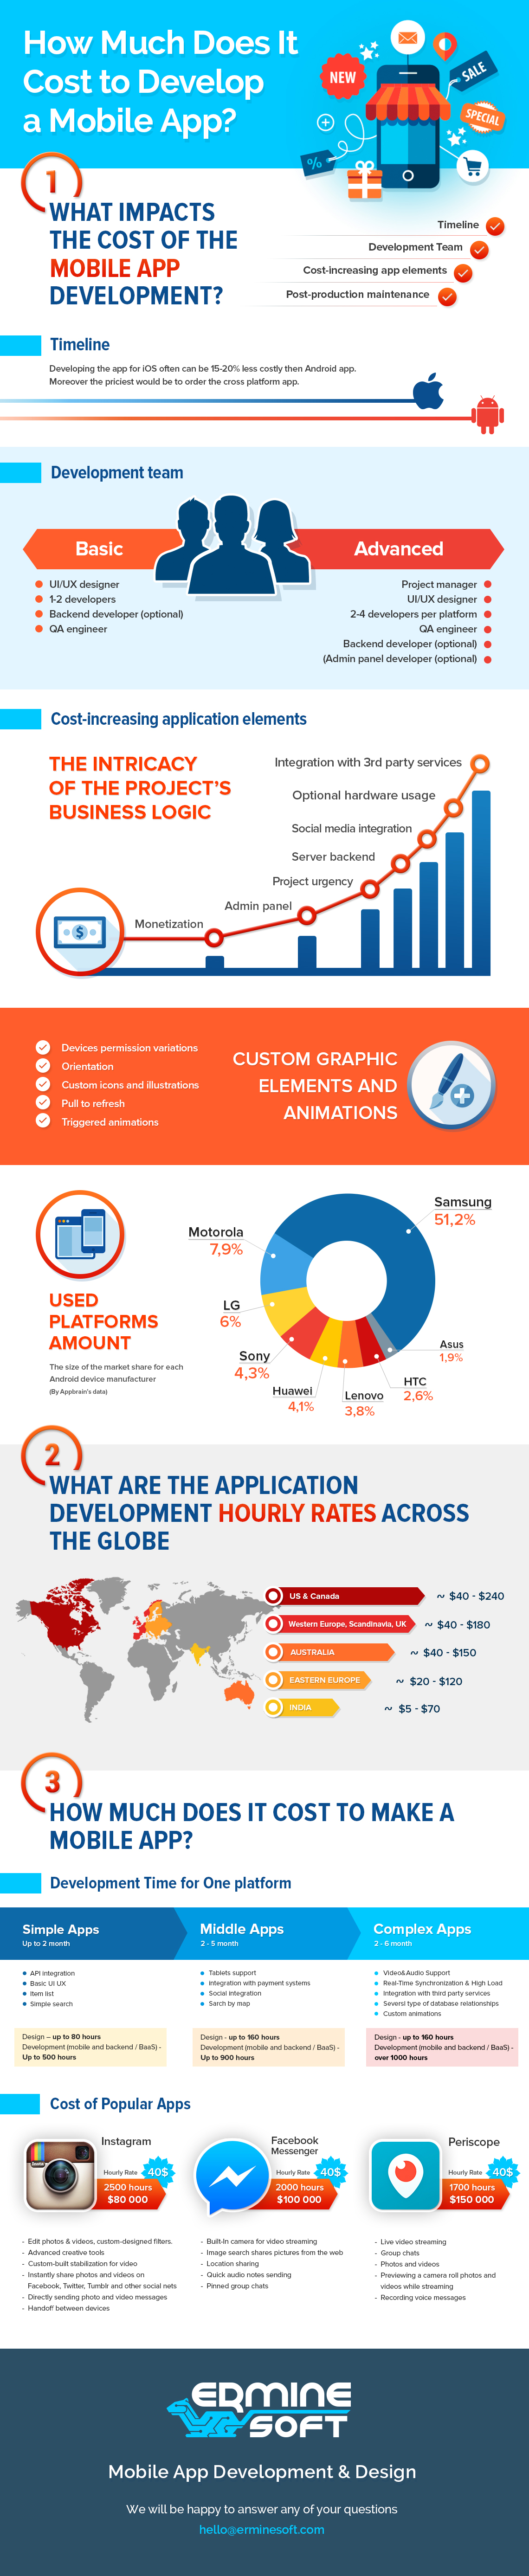 How Much Does It Cost to Develop a Mobile App by Erminesoft